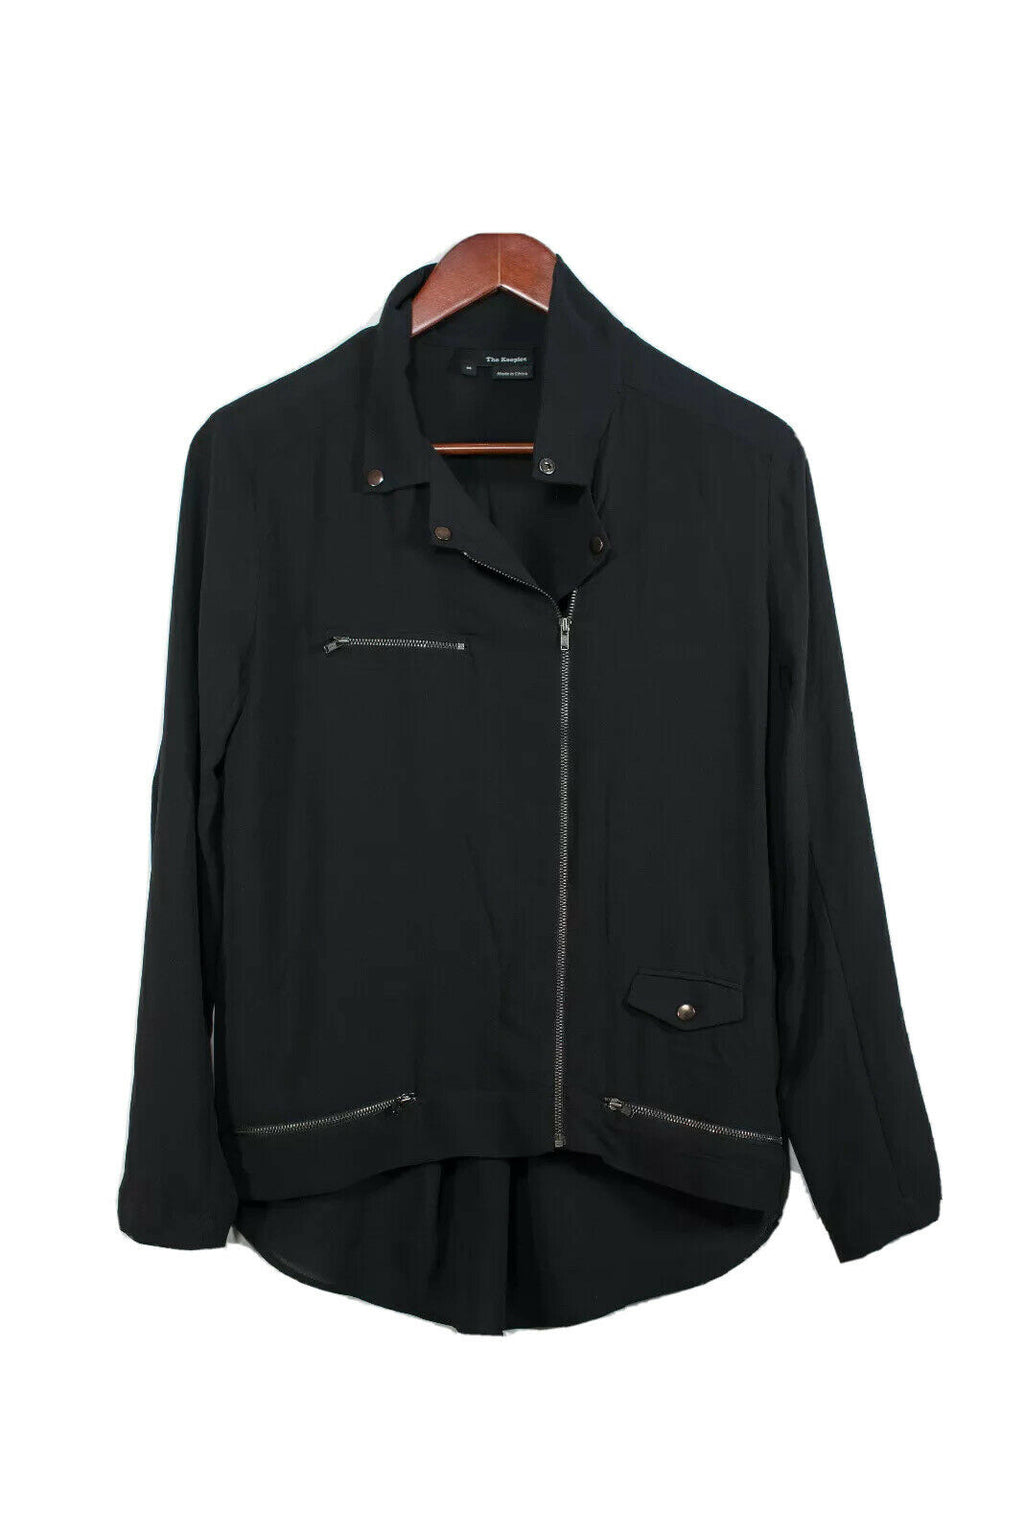 The Kooples Medium Black Crepe Bomber Jacket